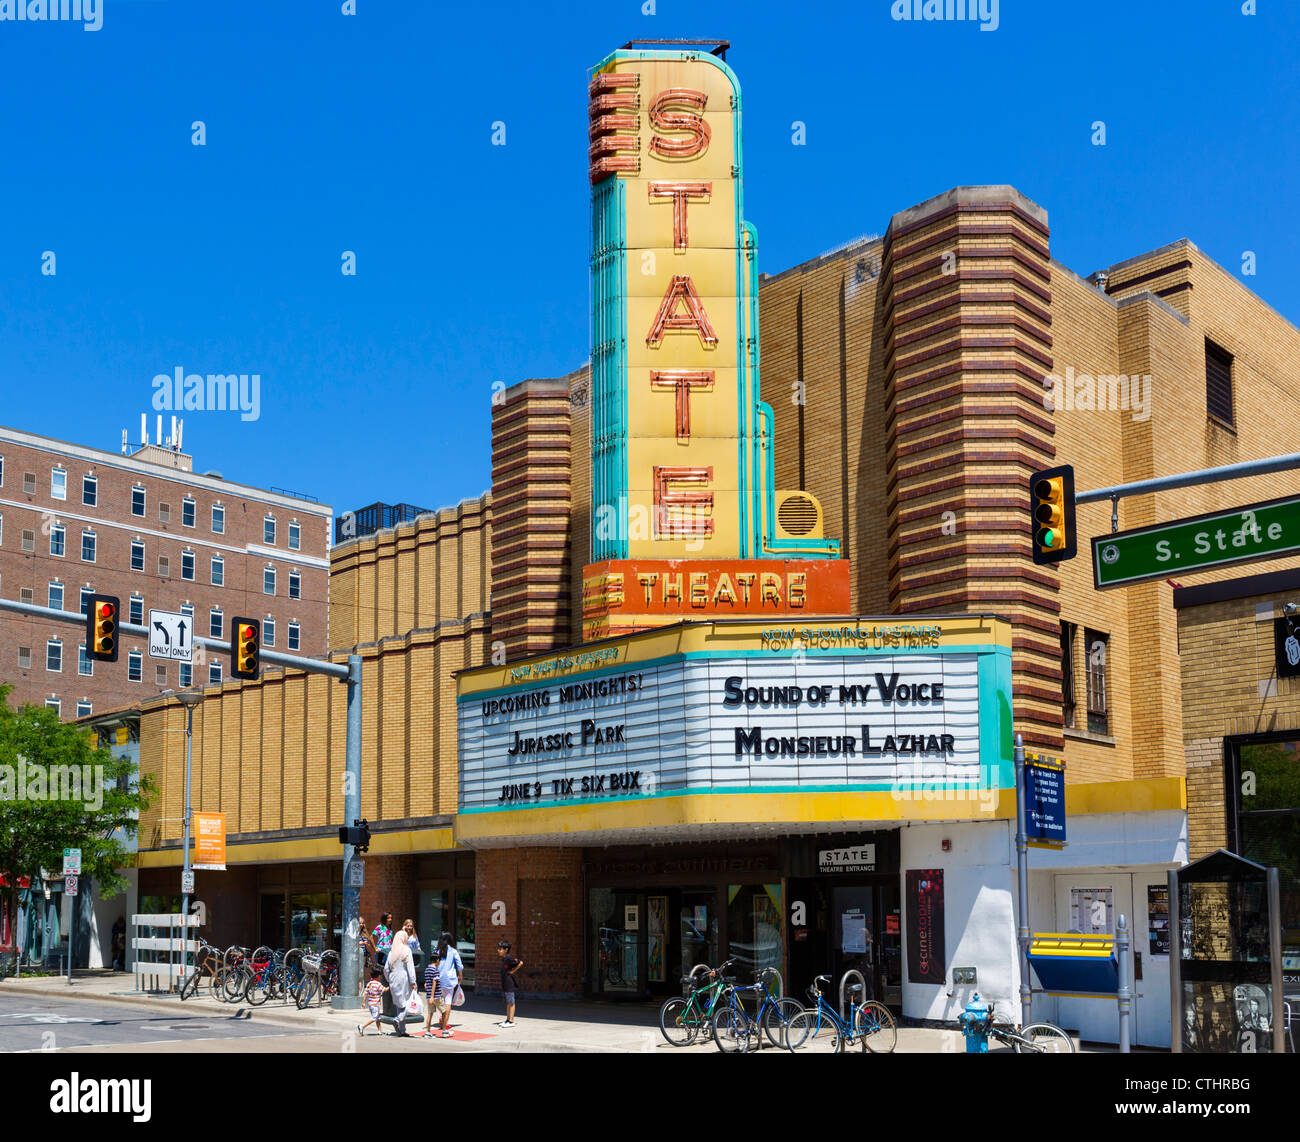 State Theater on State Street in downtown Ann Arbor, Michigan, USA - Stock Image